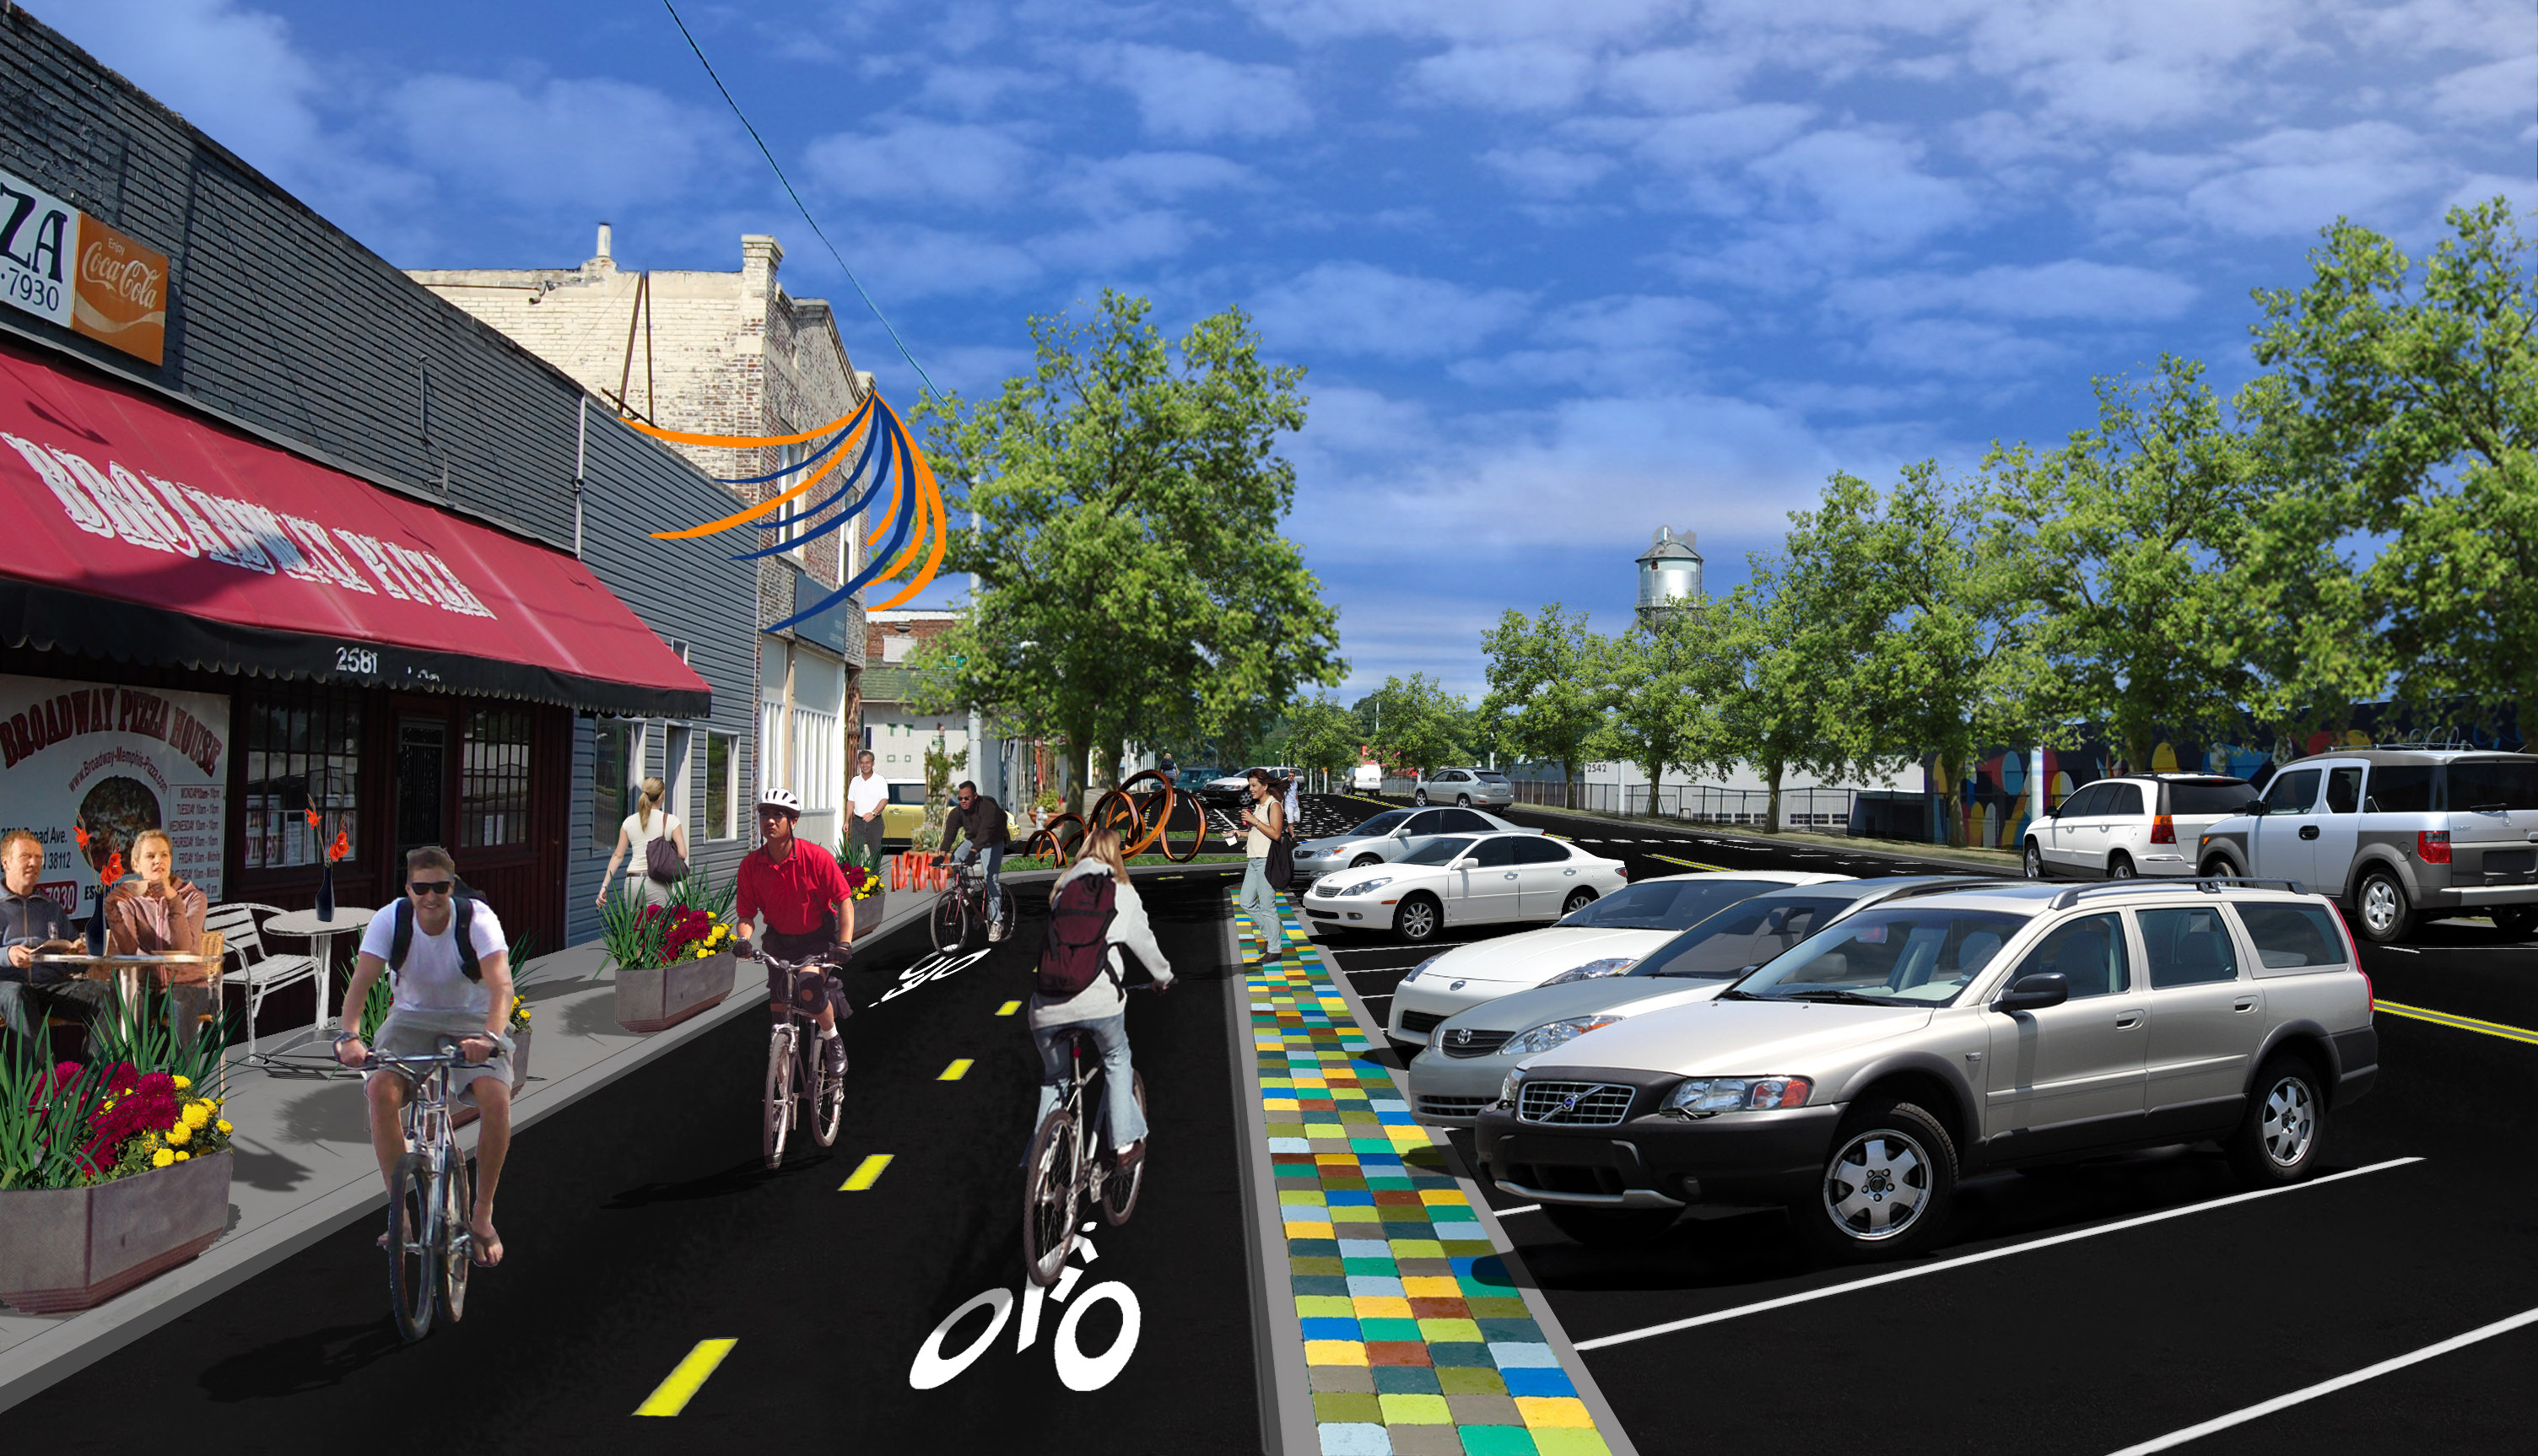 Hampline_on_Broad_in_the_Arts_District_showing_treatment_with_angled_parking___Fuss___O'Neill_INC.jpg